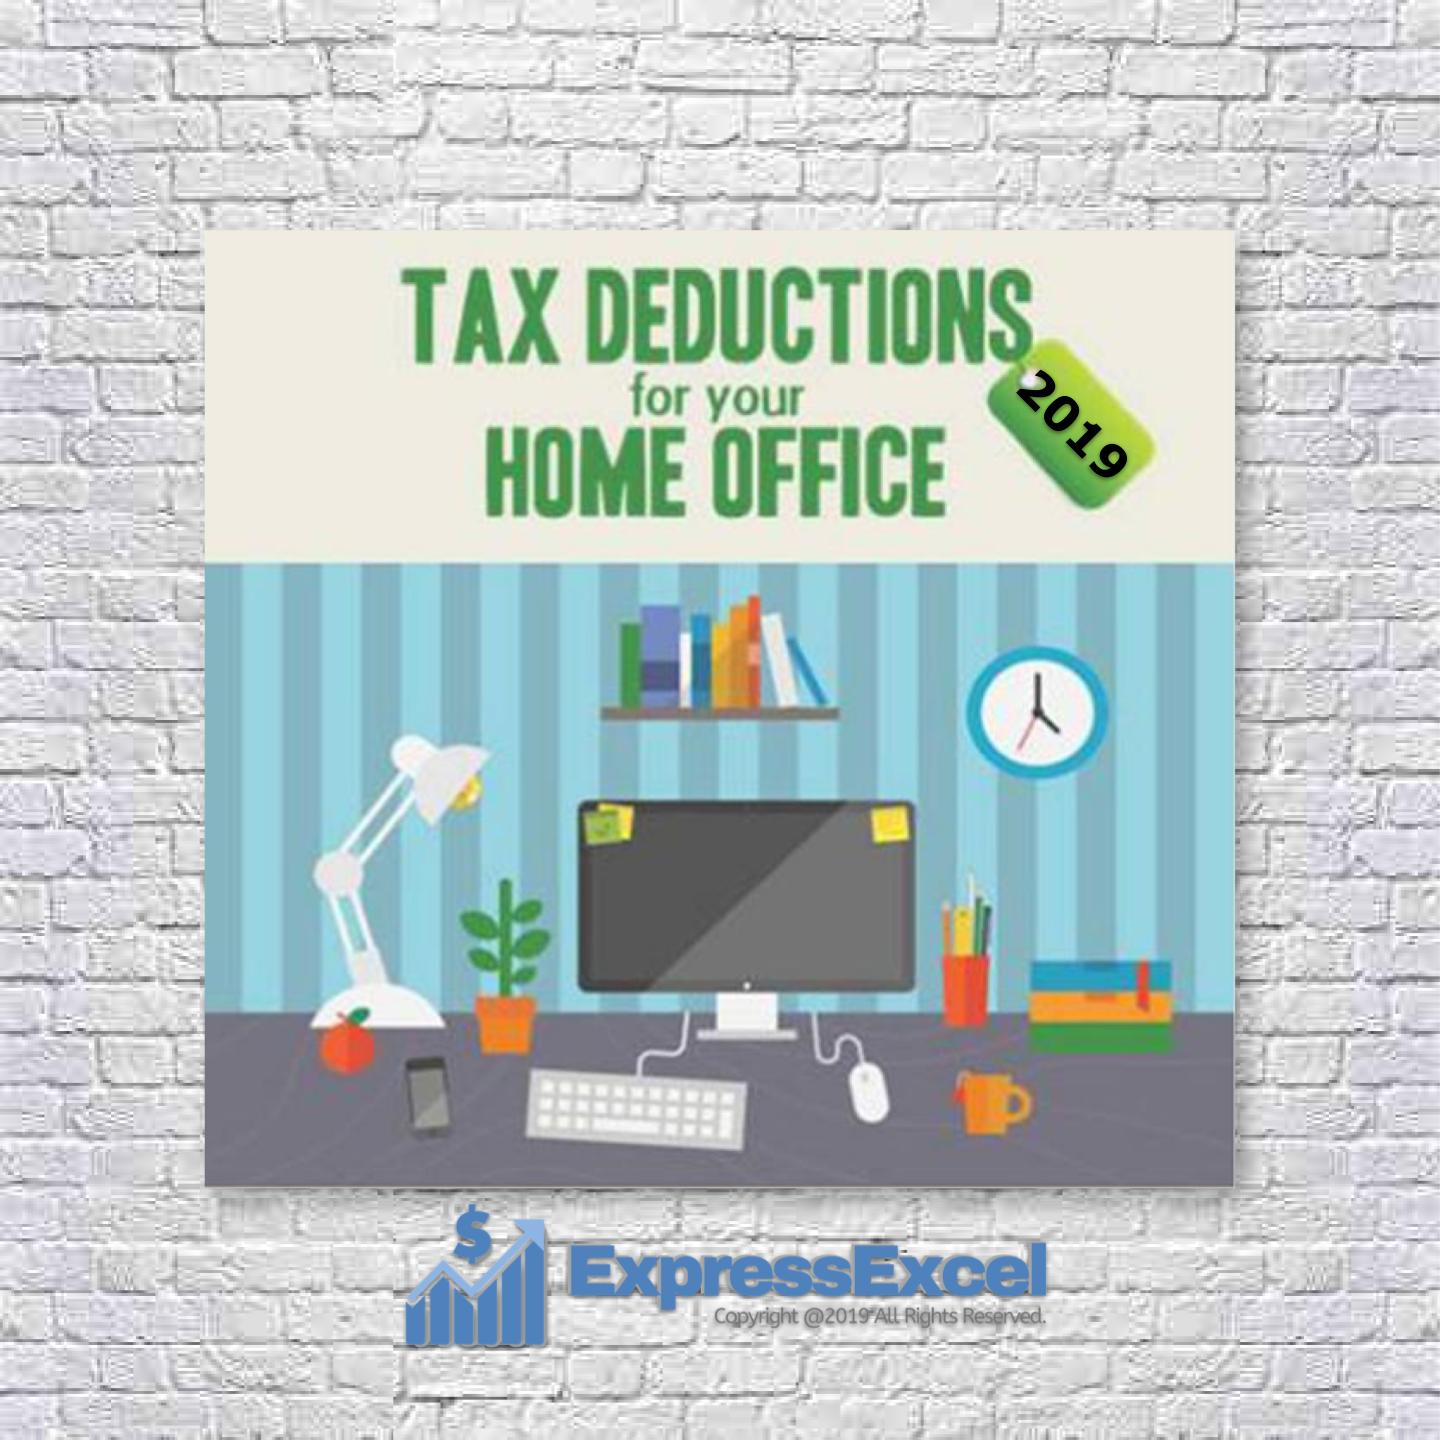 Home Office Tax Deductions Calculator 2019